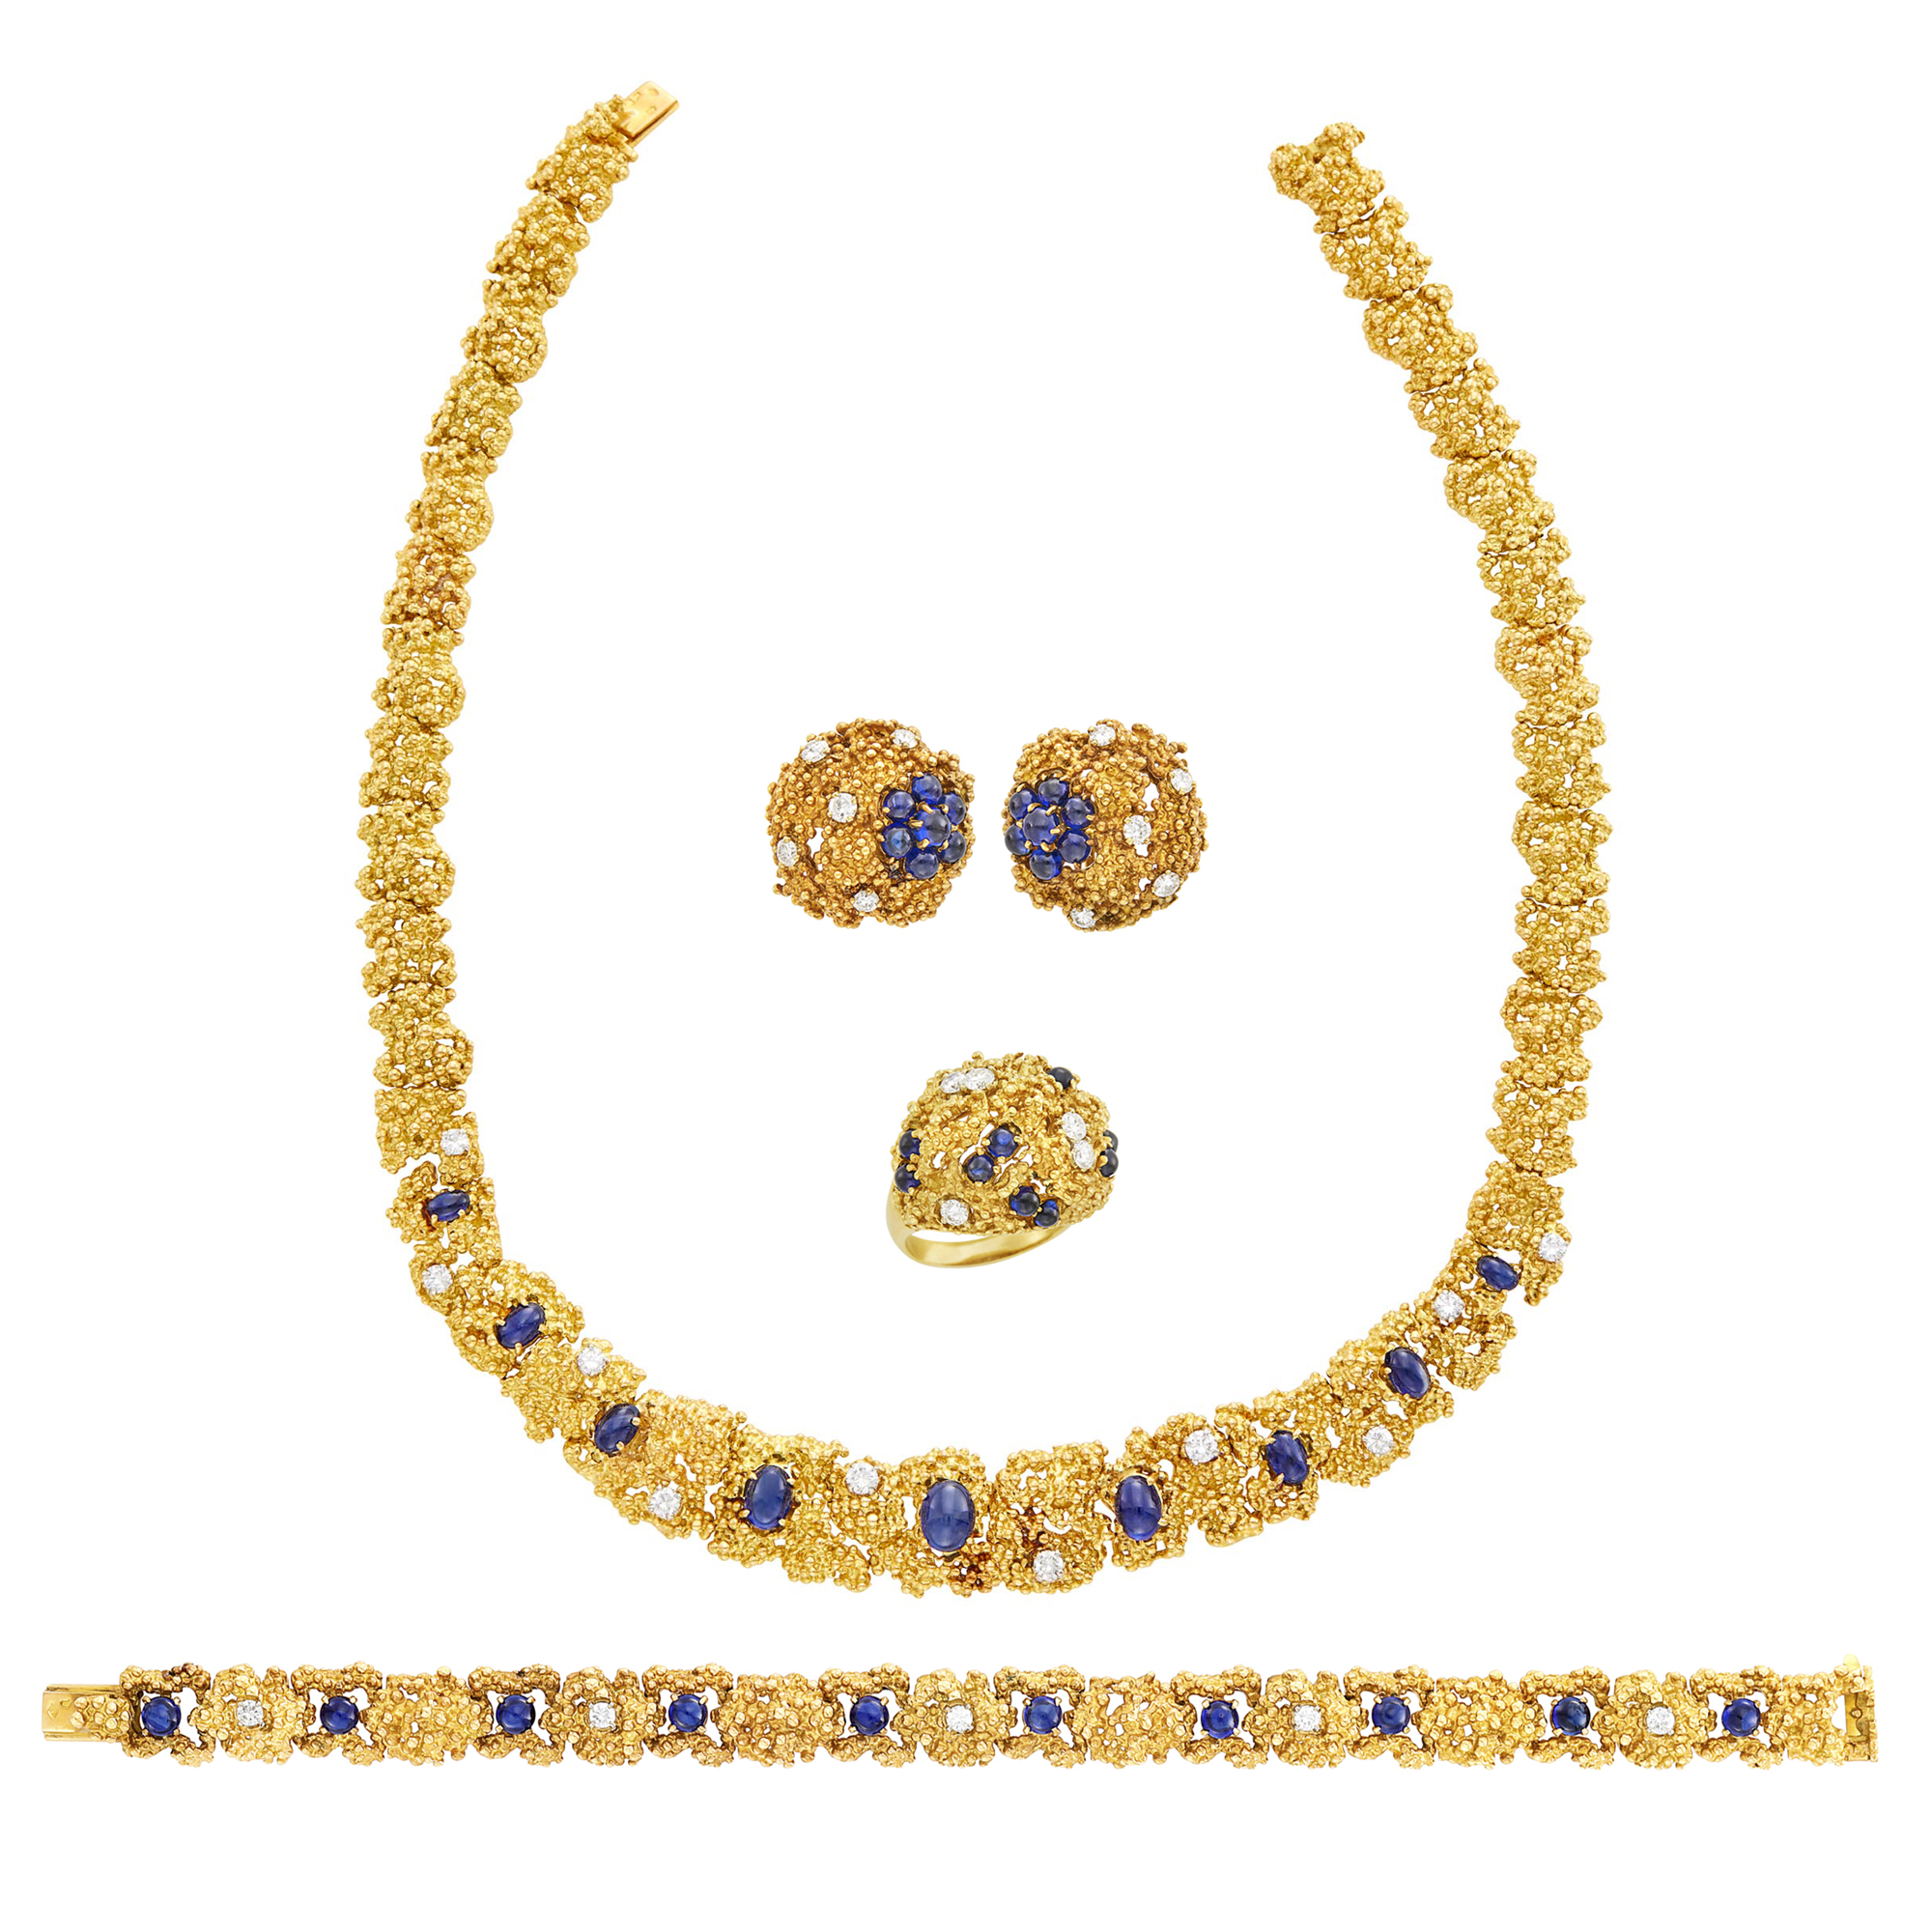 Lot image - Boucheron Paris Suite of Nugget Gold, Cabochon Sapphire and Diamond Jewelry